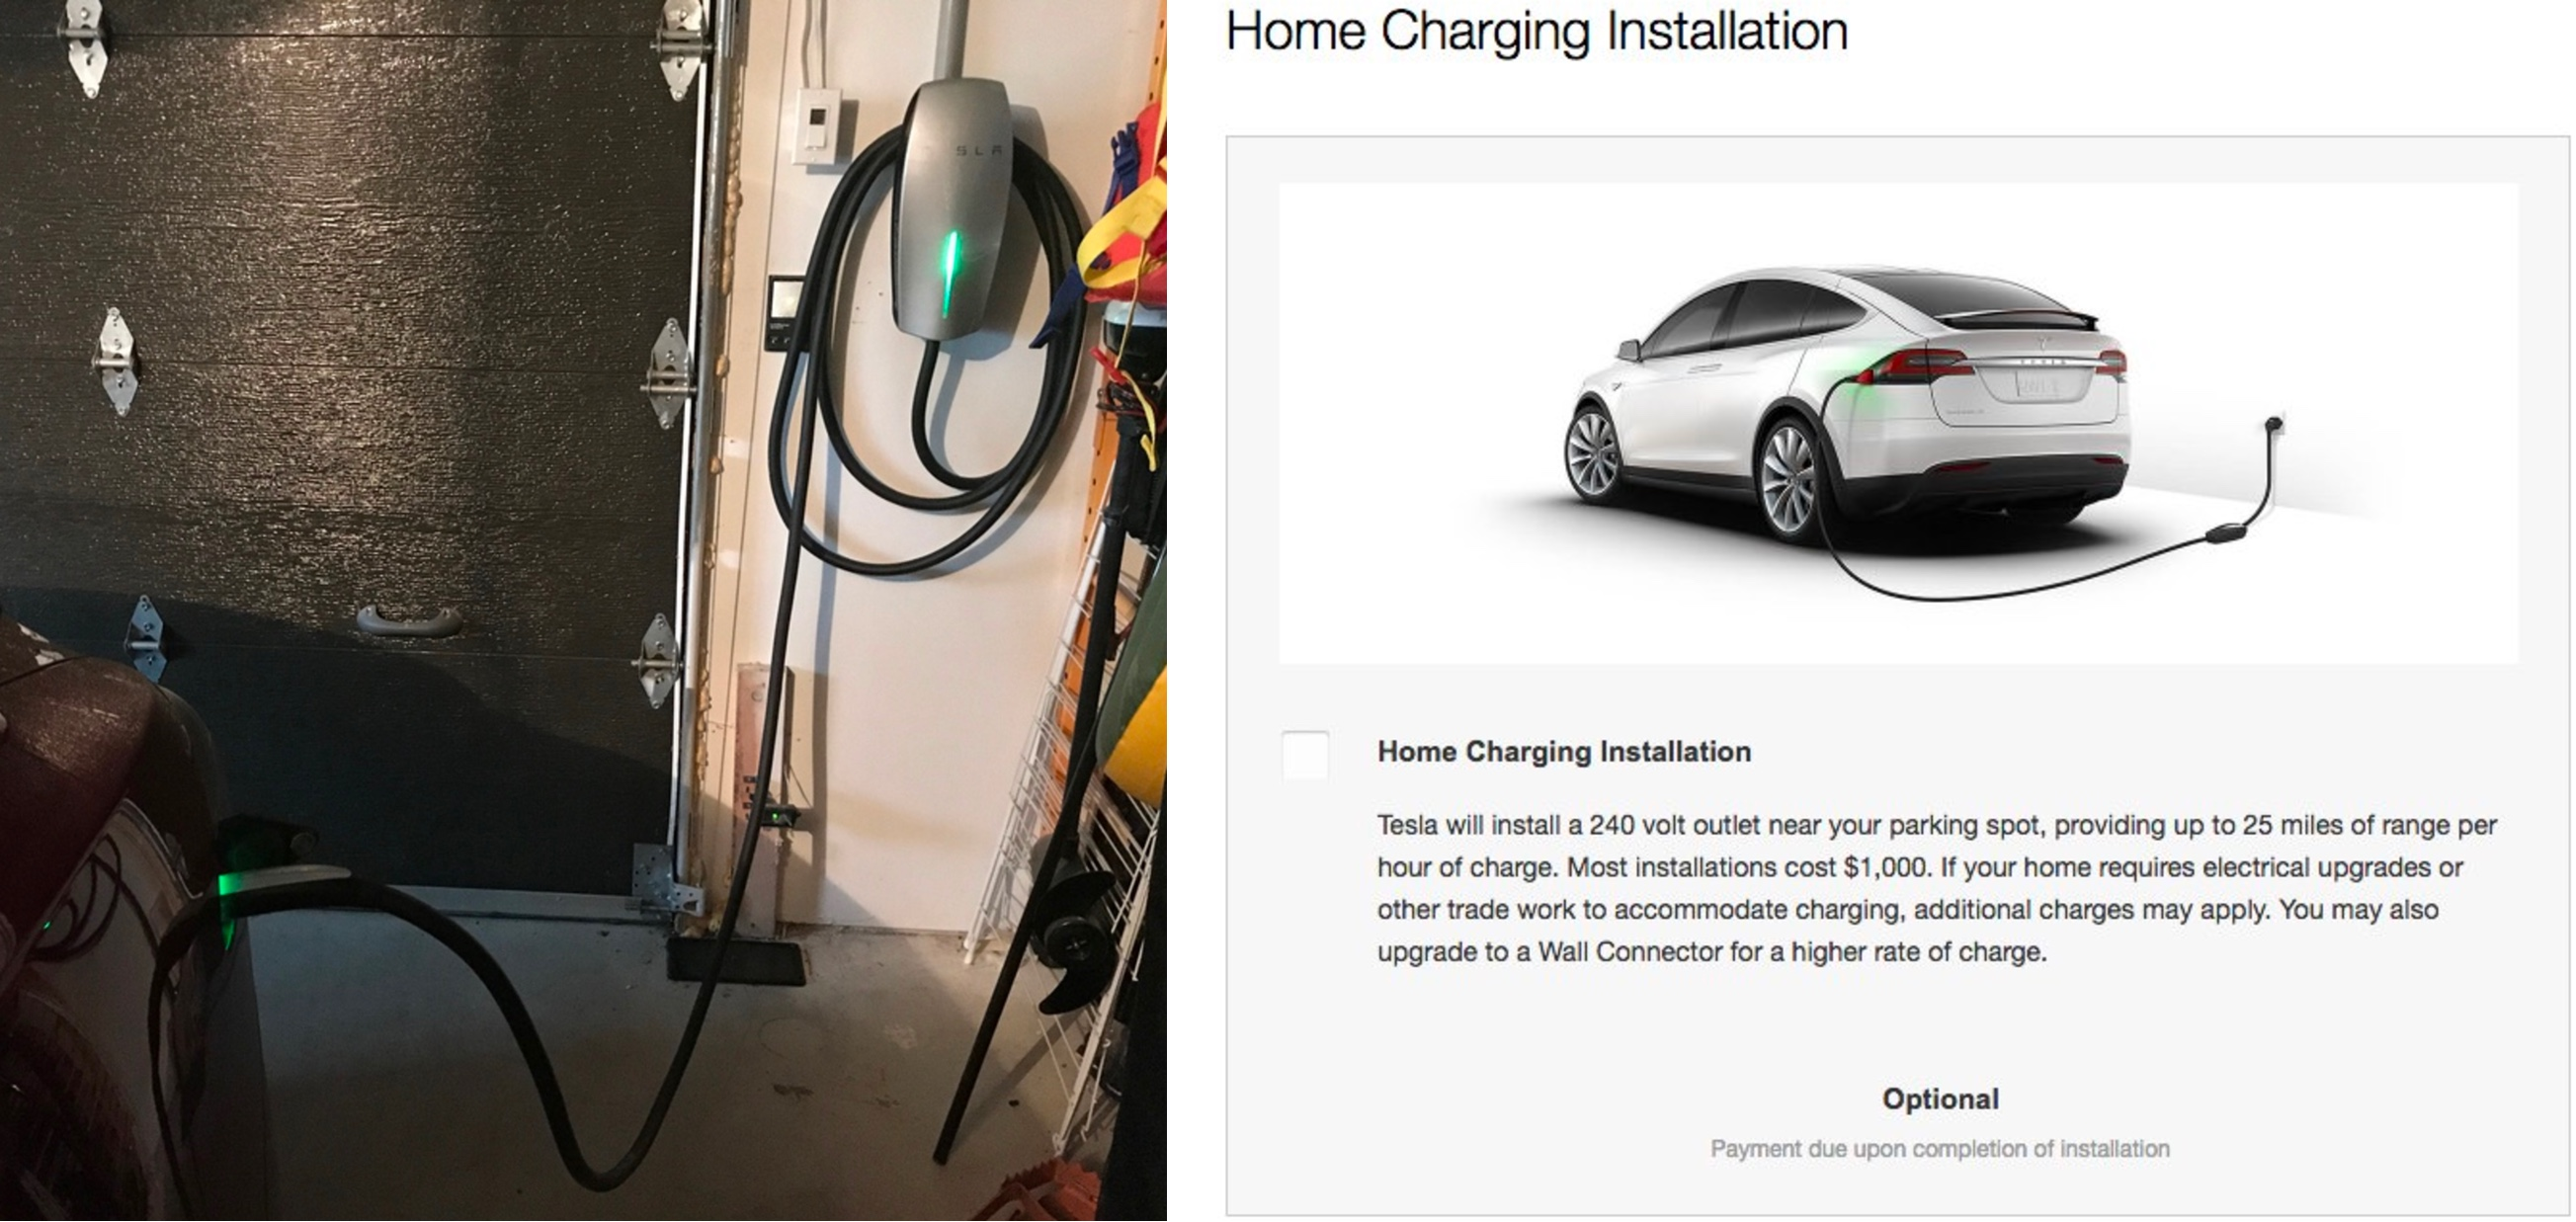 Tesla Starts Offering Home Charging Installations In